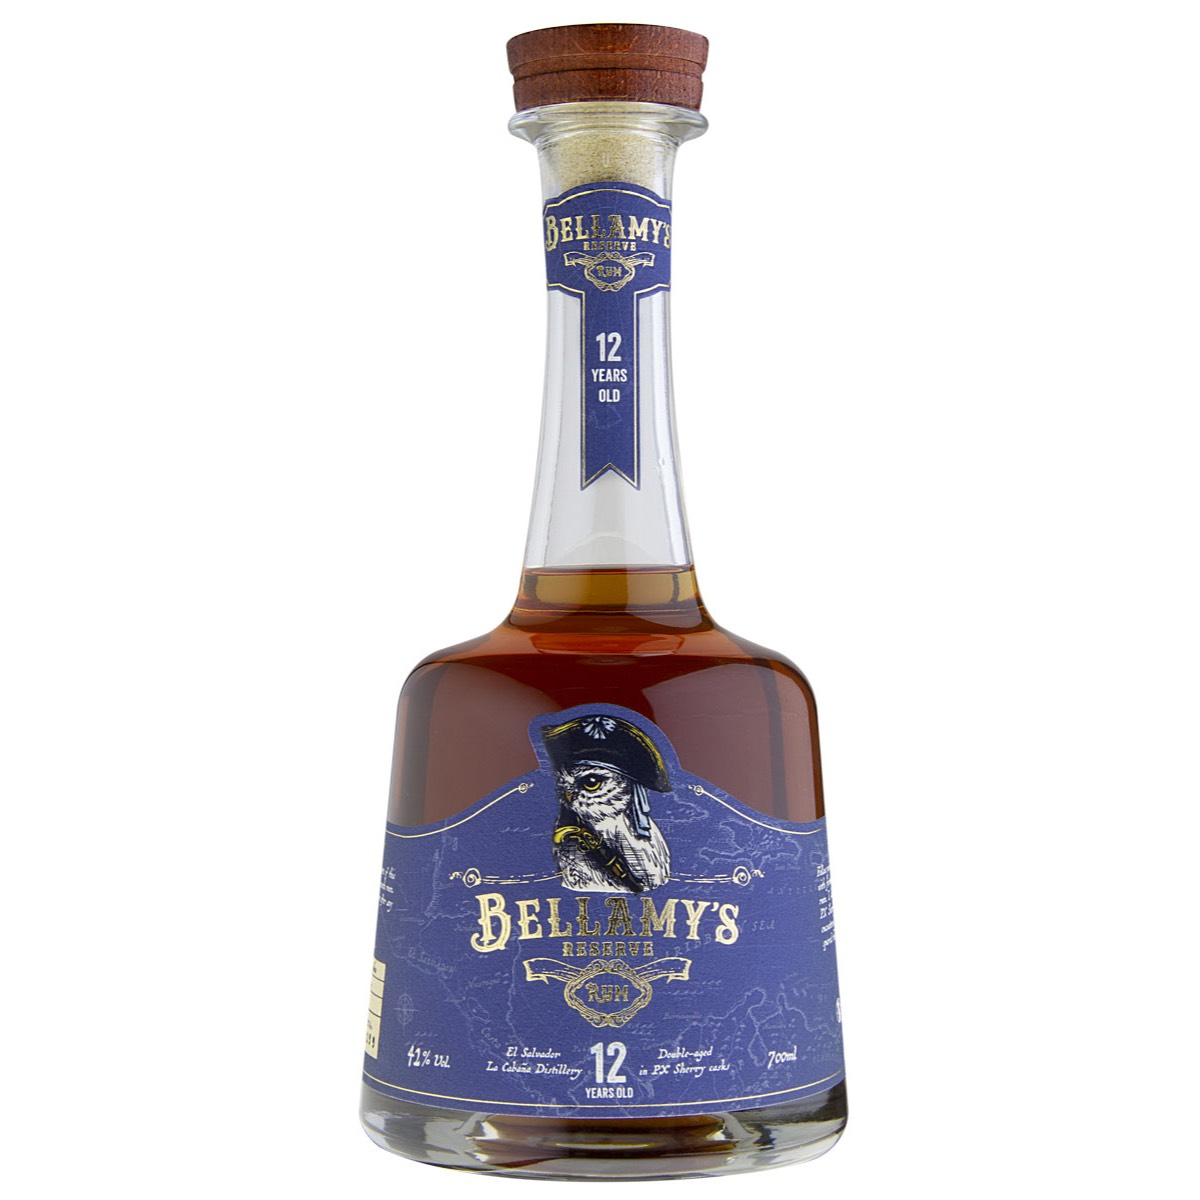 Bottle image of Bellamy's Reserve El Salvador 12 years old PX Sherry Cask Finish